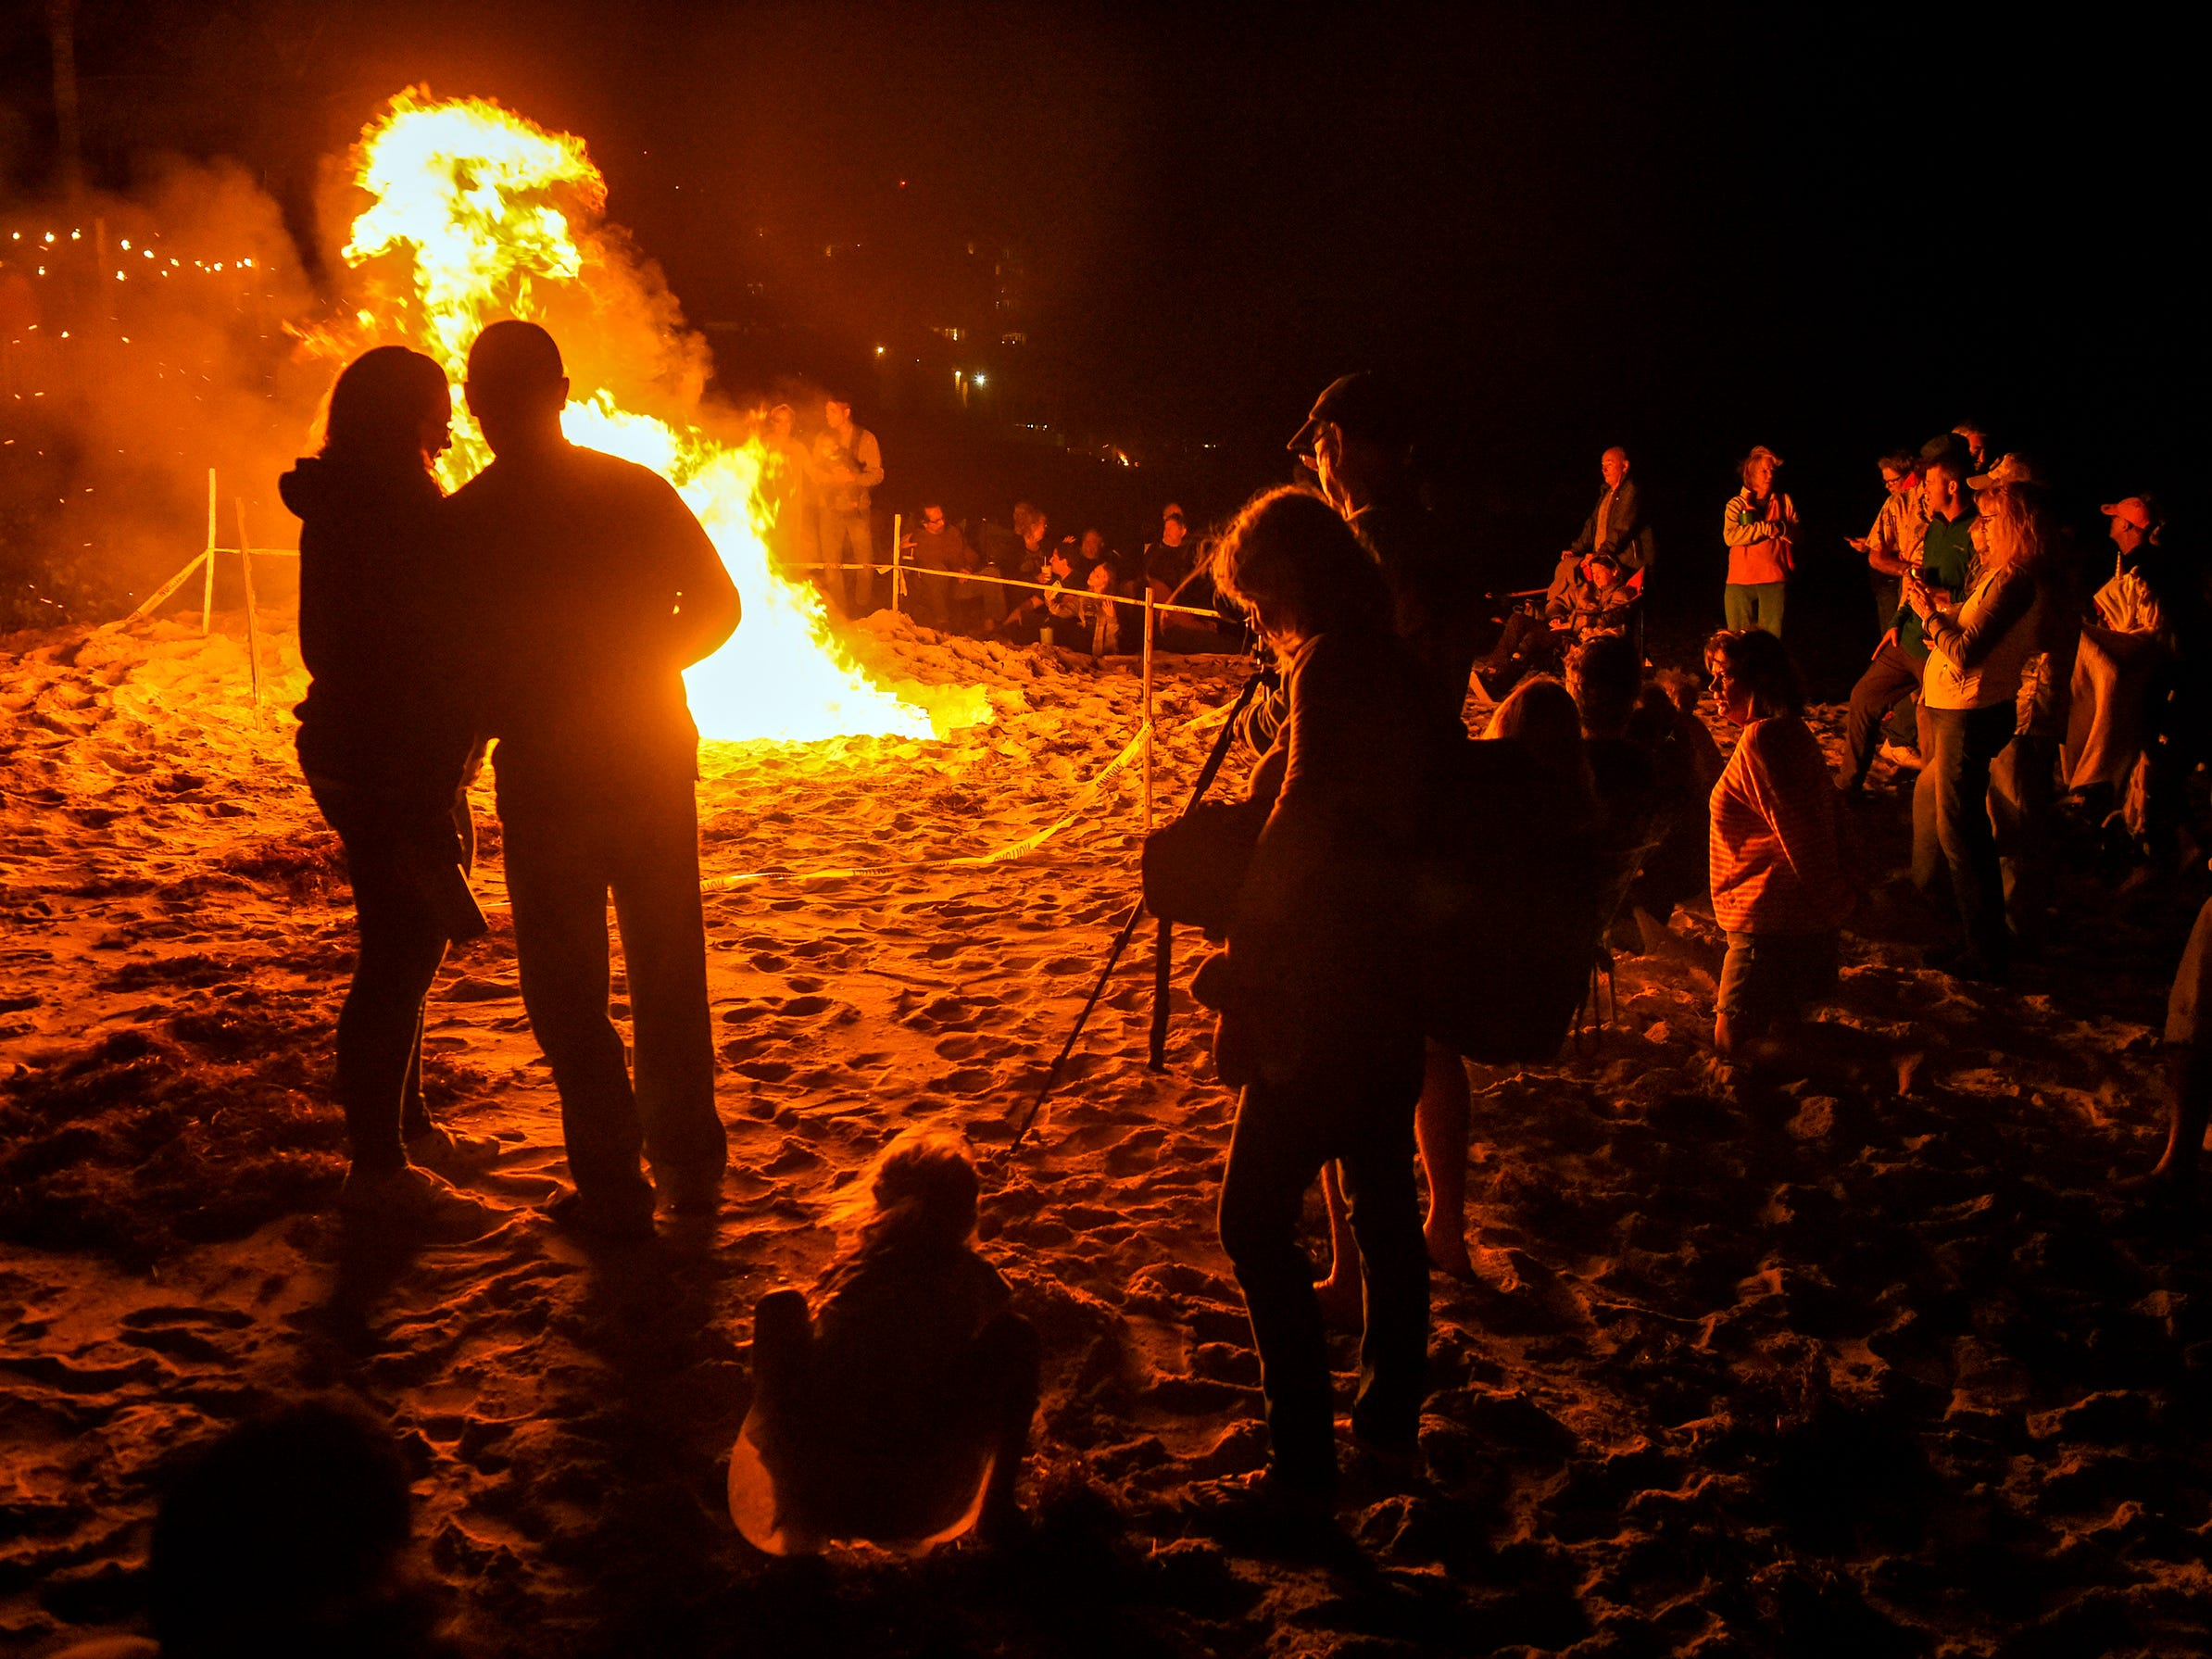 Flames light up the night Saturday, Nov. 17, 2018, during the Beachside Bonfire Fest along Sexton Plaza Beach in Vero Beach. The event, a part of Vero Beach's Centennial Celebration, featured four different themed bonfires along the beach with food, drinks, and live music.